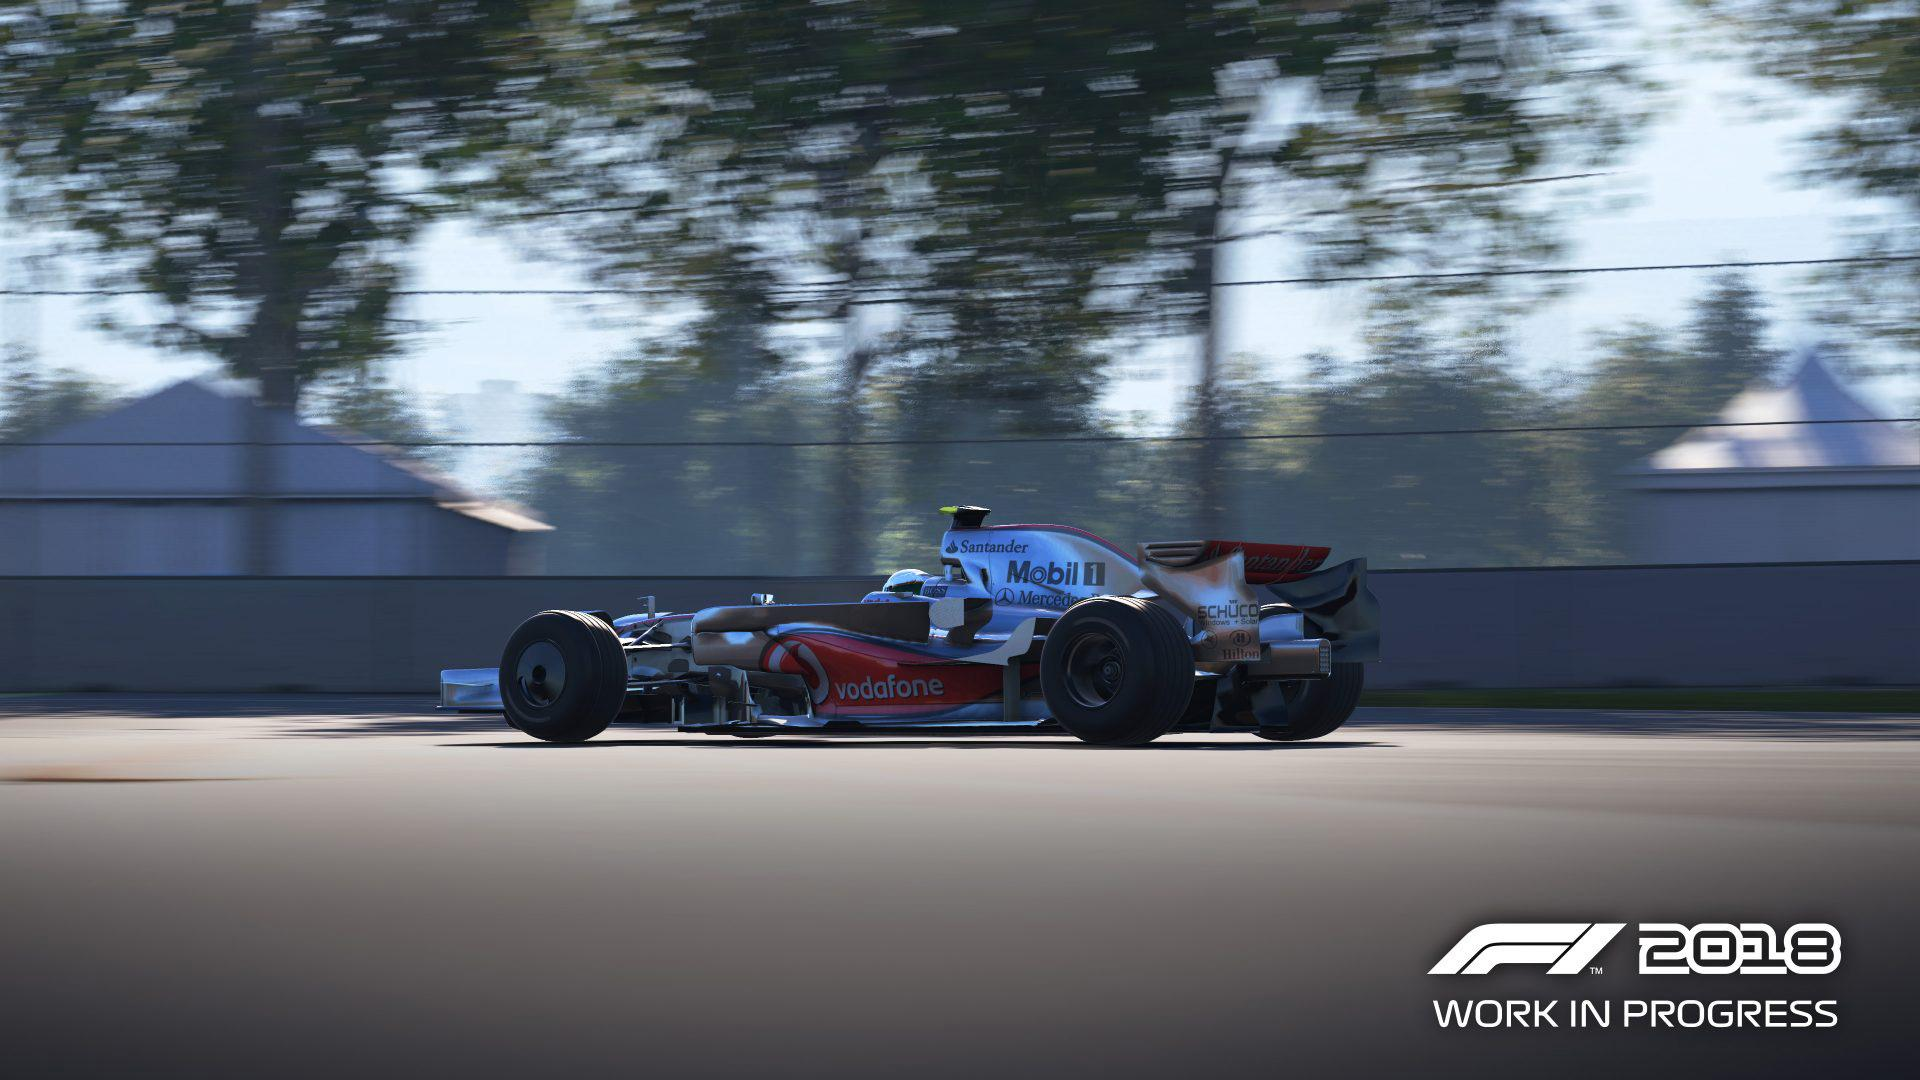 F1 2019 Videogame Wallpapers Wallpaper Cave